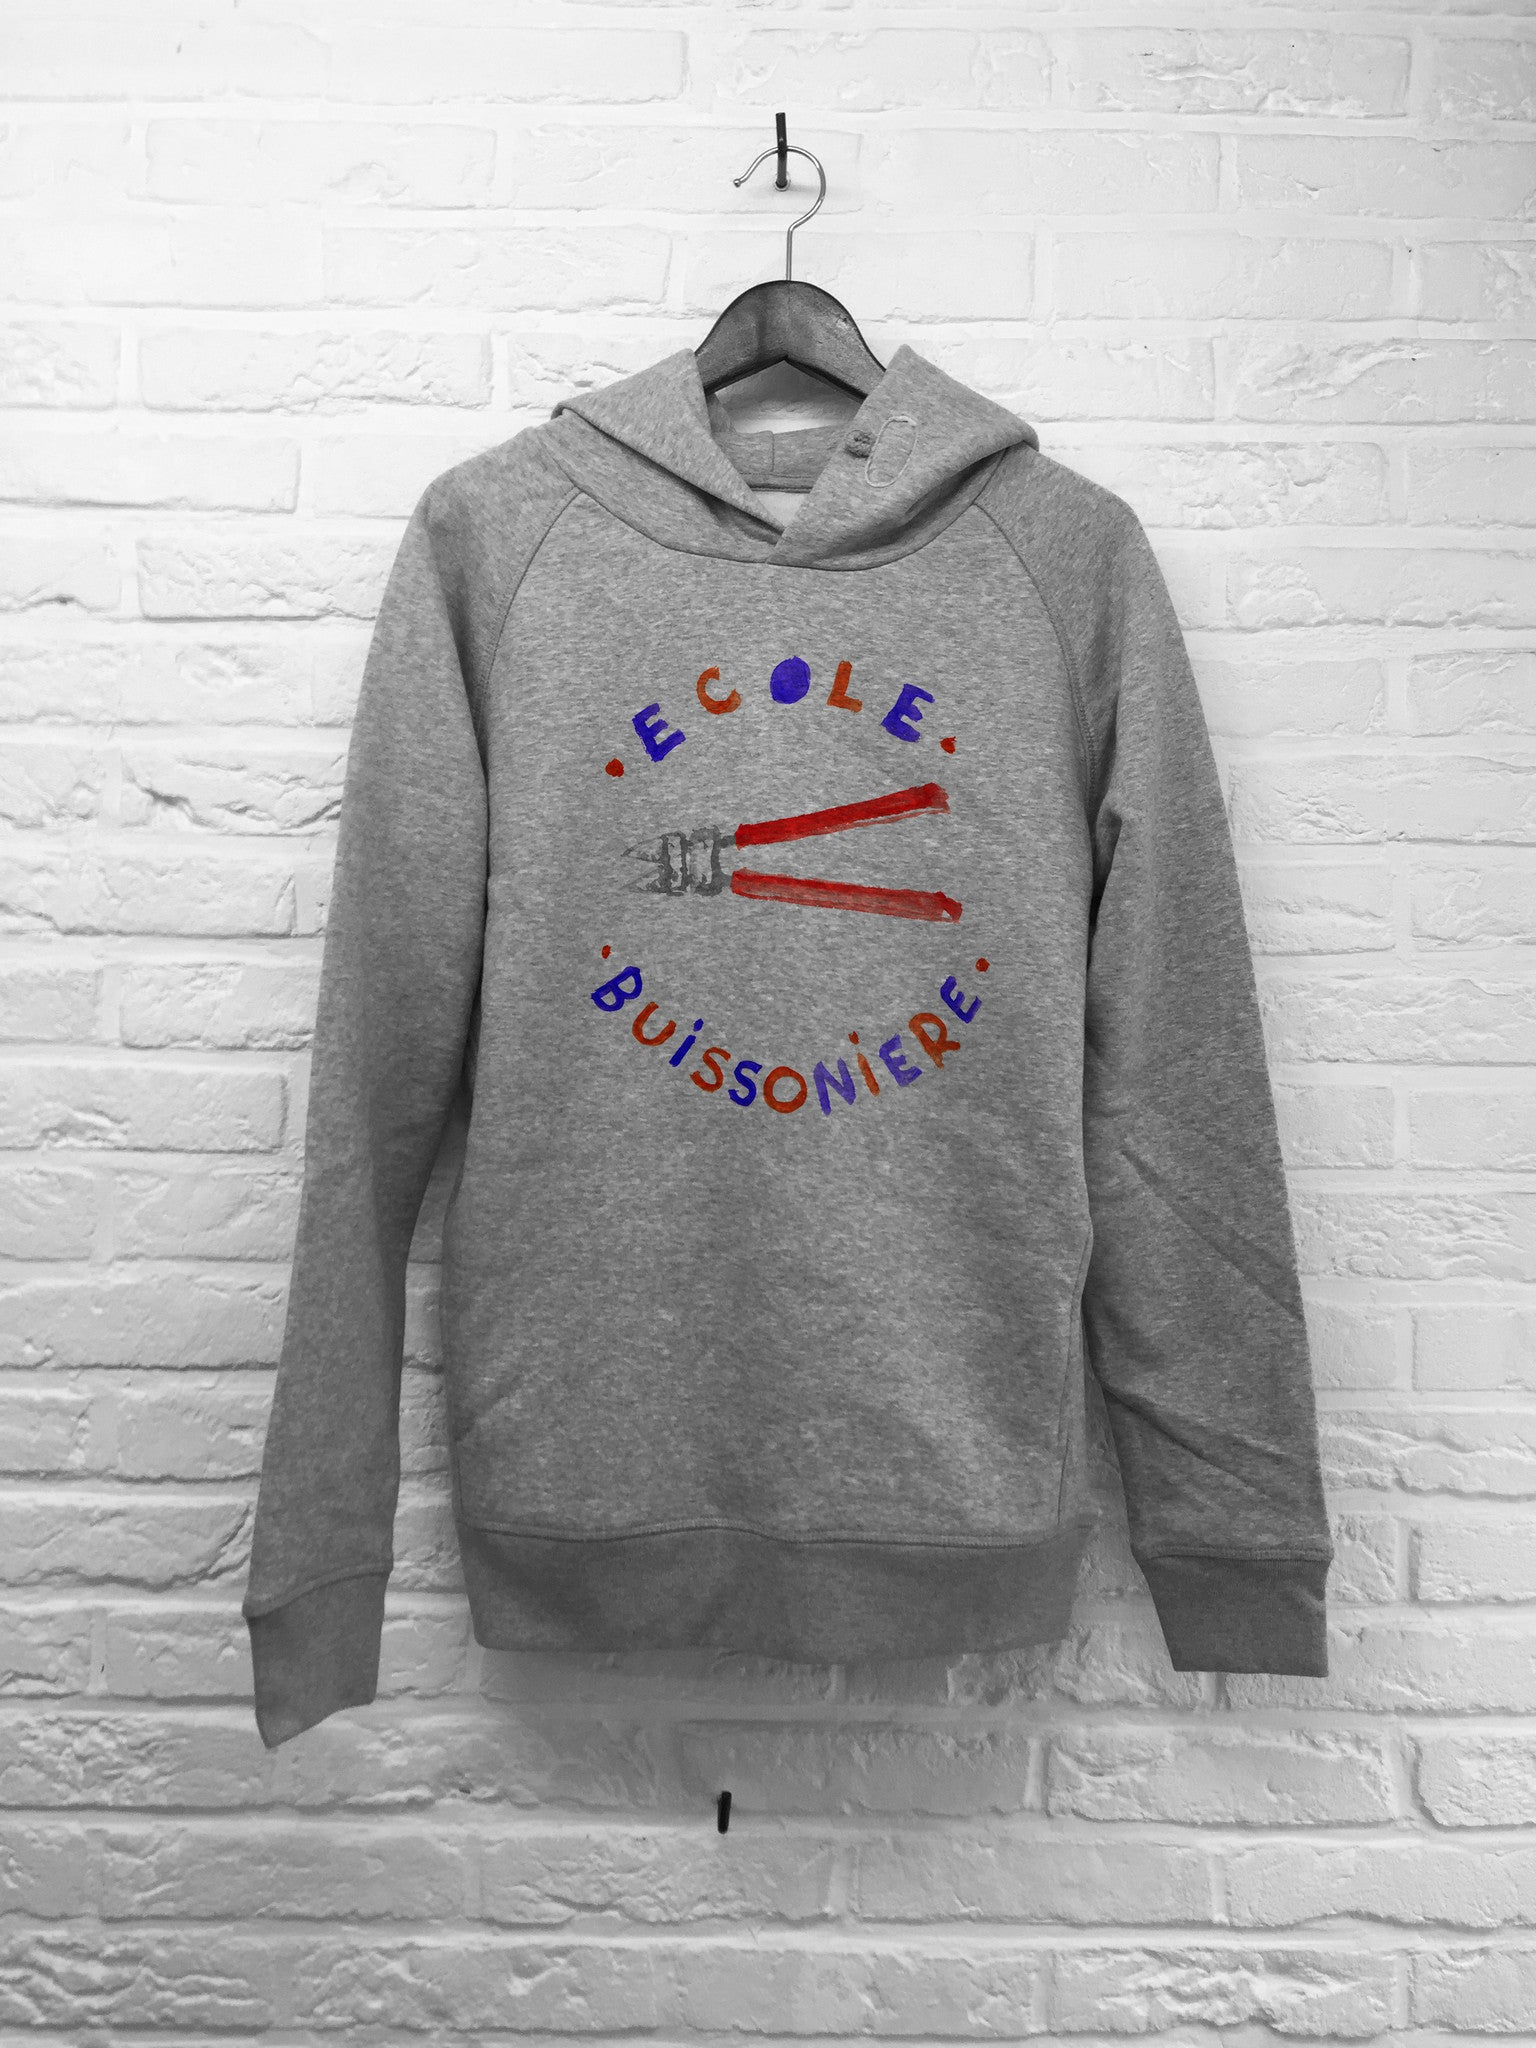 Th Gallery - Ecole Buissoniere - Hoodie Deluxe-Sweat shirts-Atelier Amelot